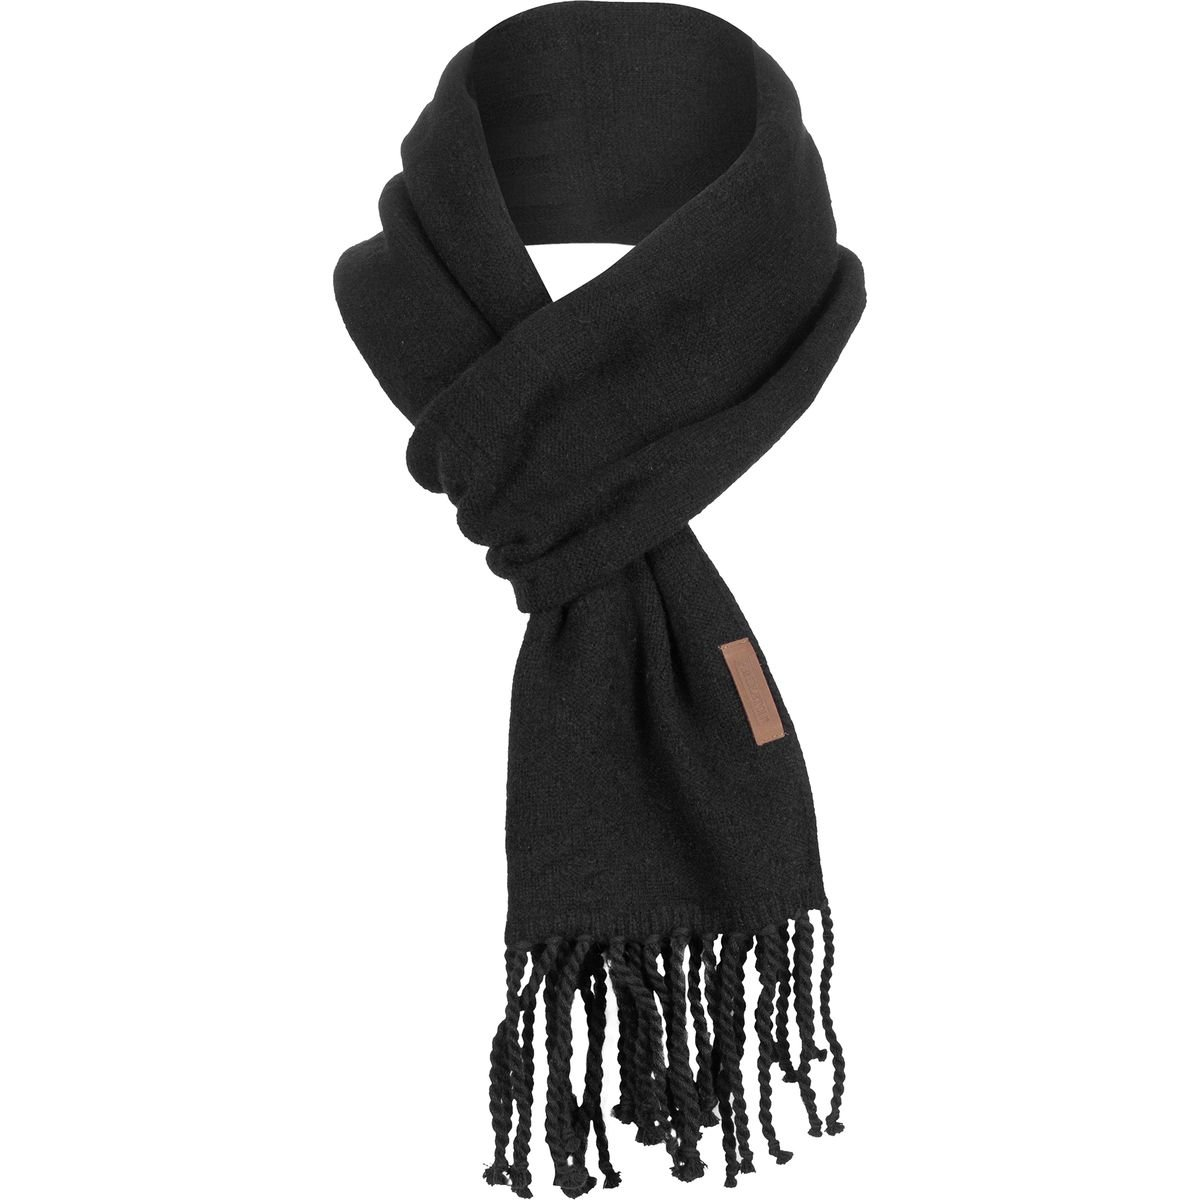 Pendleton Cashmere Scarf - Women's Black, One Size